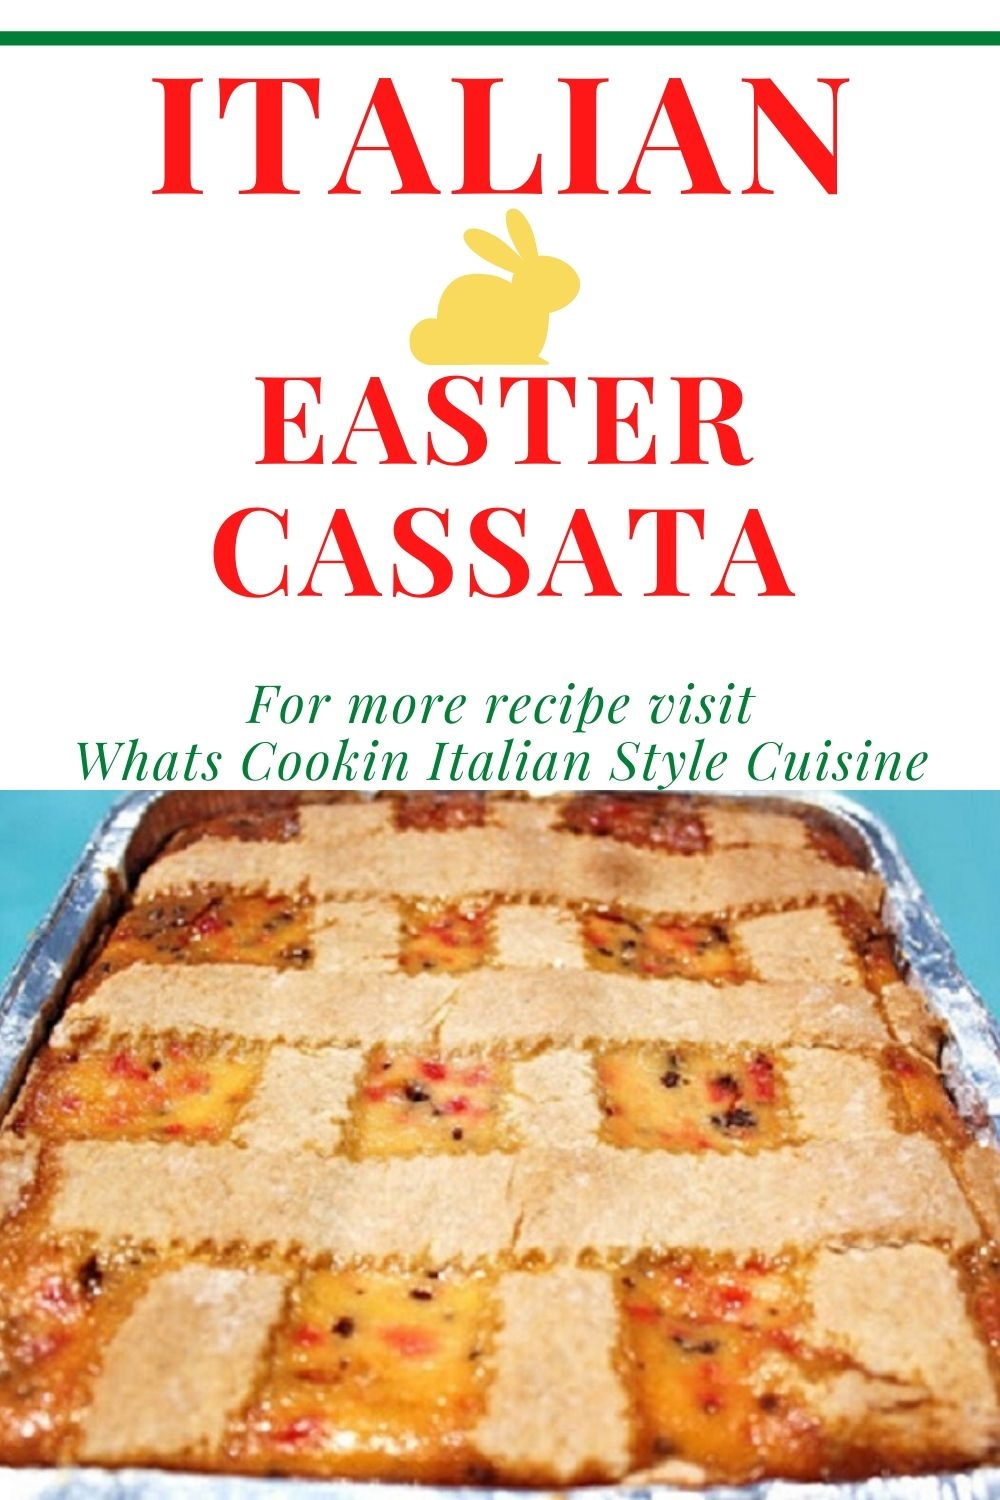 this is a pin for later on how to make an Italian cassata cheesecake